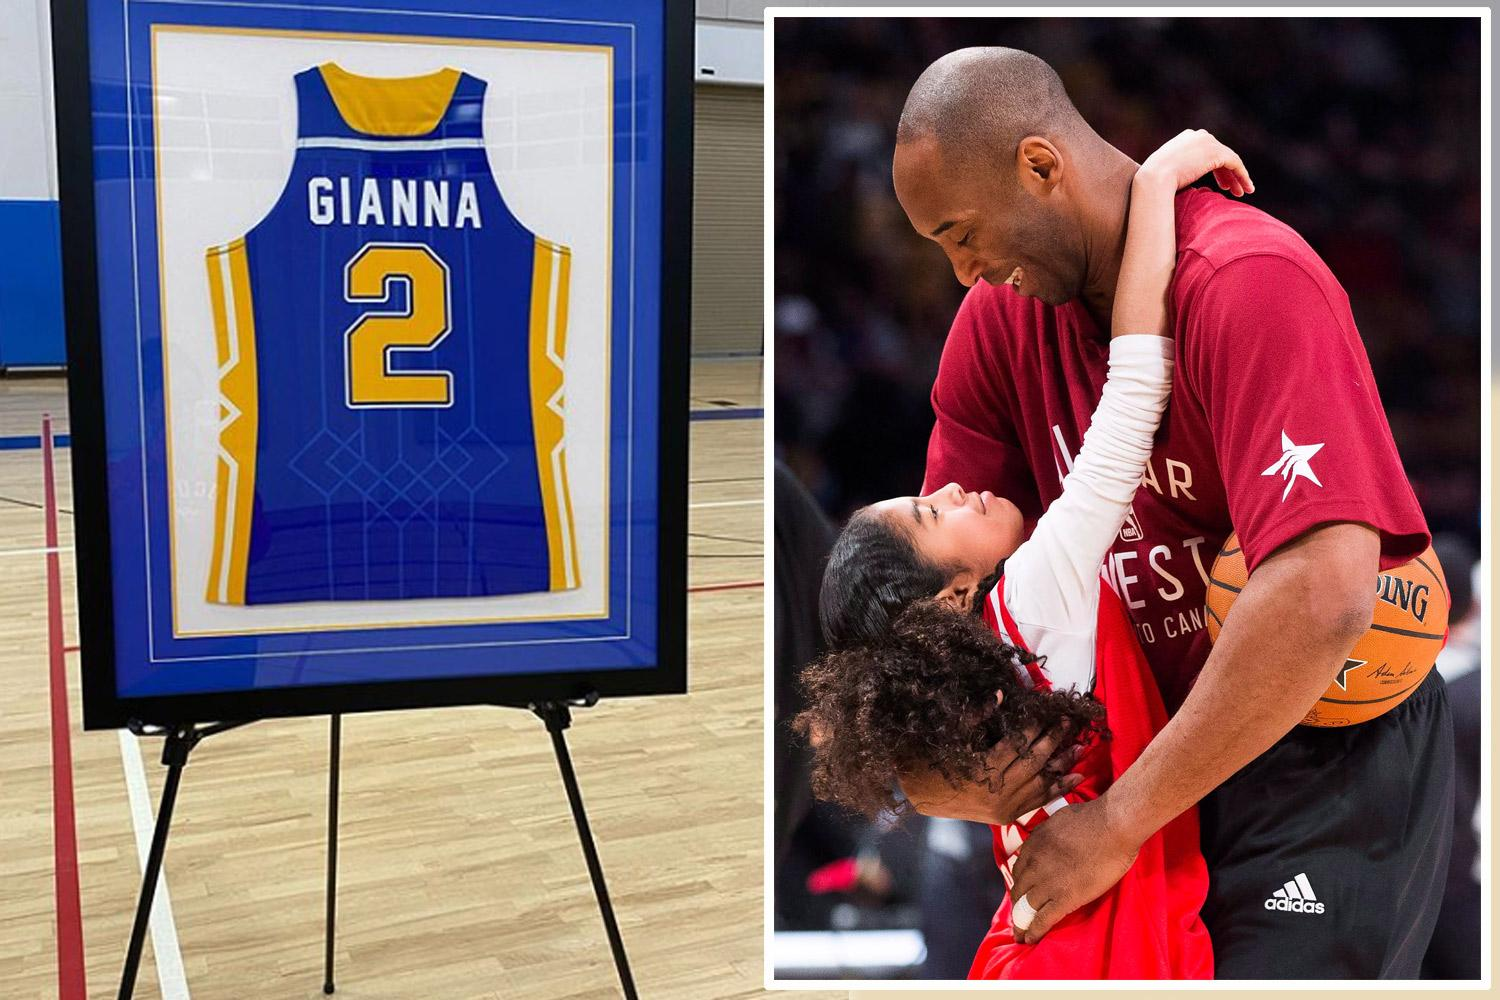 Gianna Bryant Tribute